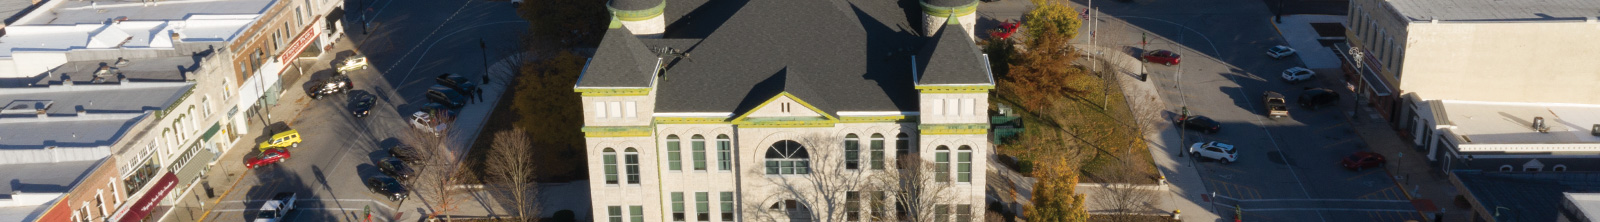 Jasper-County-Courthouse-Header